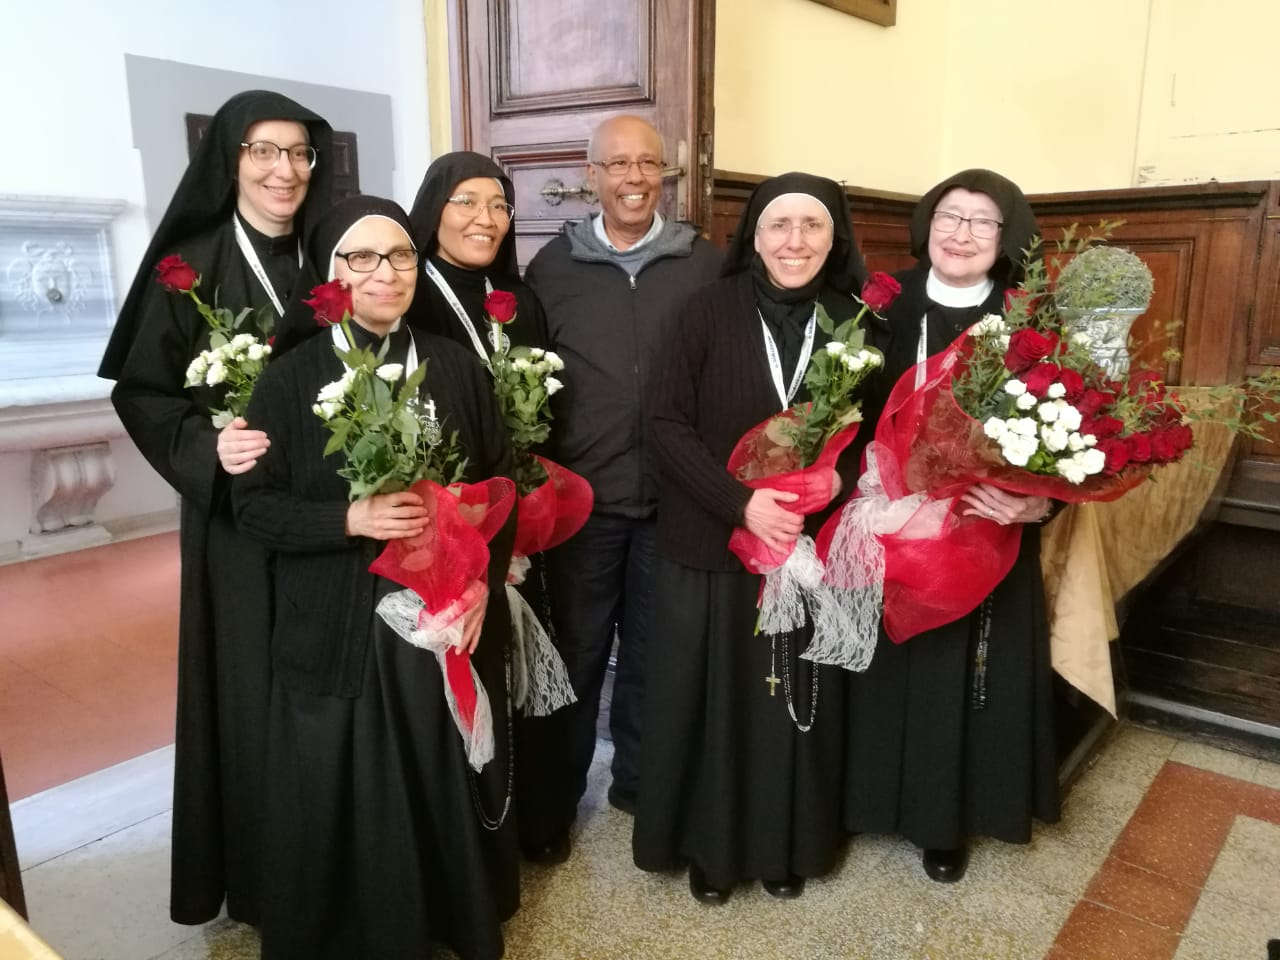 The newly-elected Mother President and General Council with Fr. Joachim Rego, CP, Superior General of the Passionist Fathers